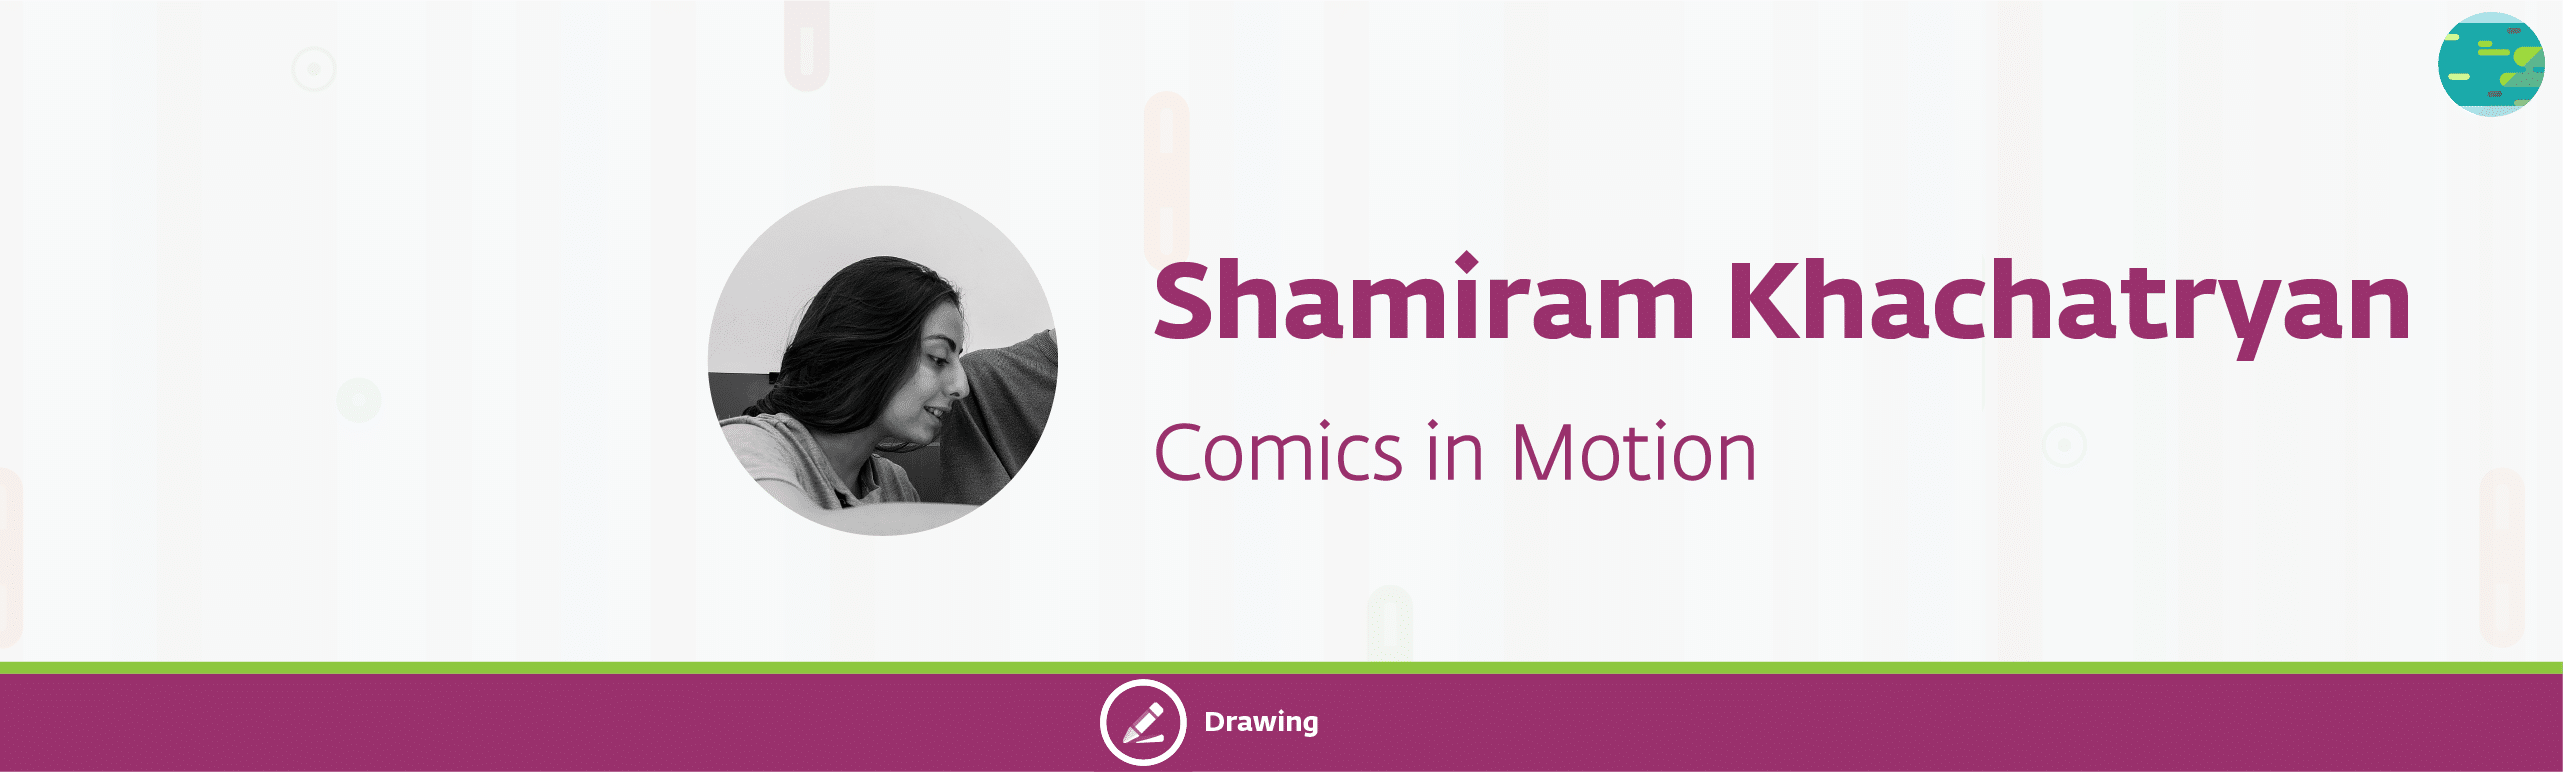 sona shamiram 45 - Comics in Motion